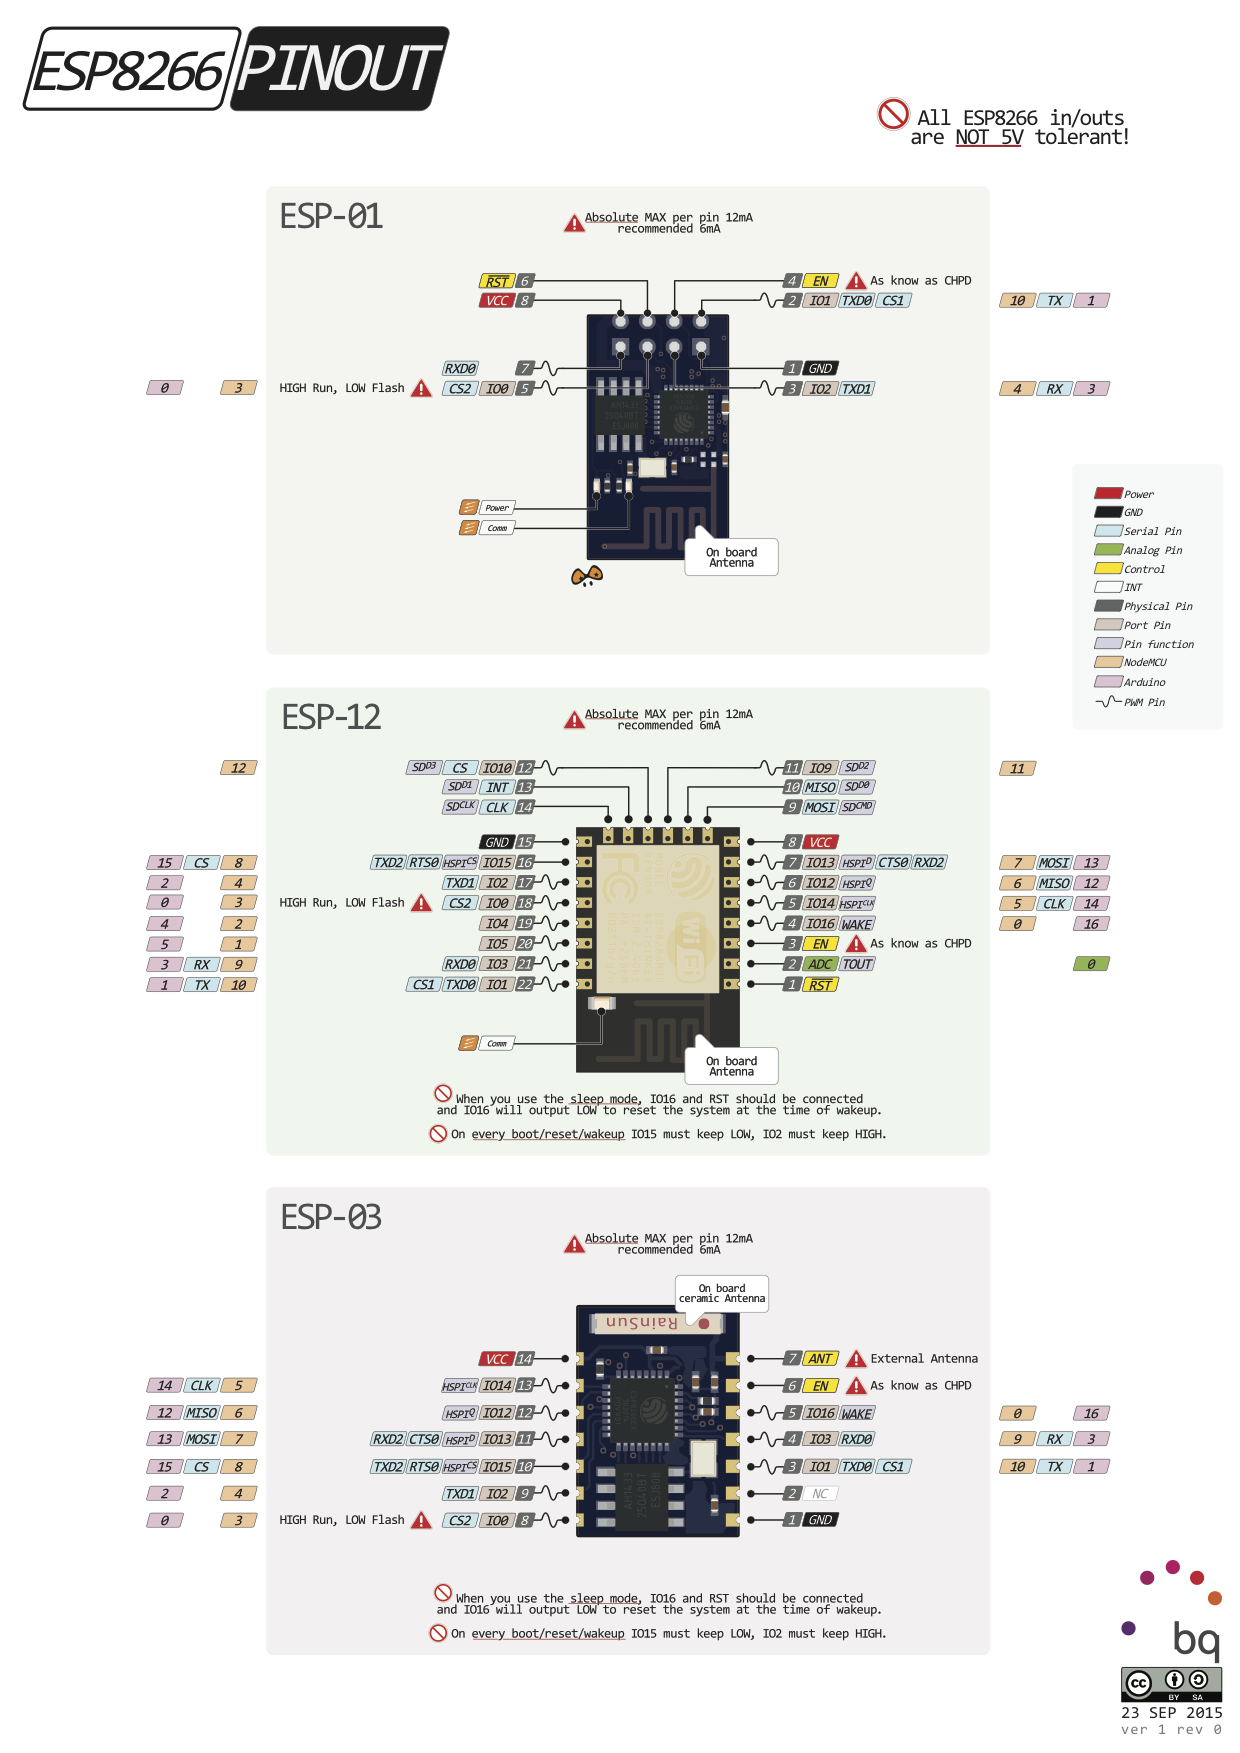 esp8266 pinout a new pinout is available finally the esp8266 pinout rh pinterest com pinout diagram for 1784-u2dhp pinout diagram for 2006 ford explorer